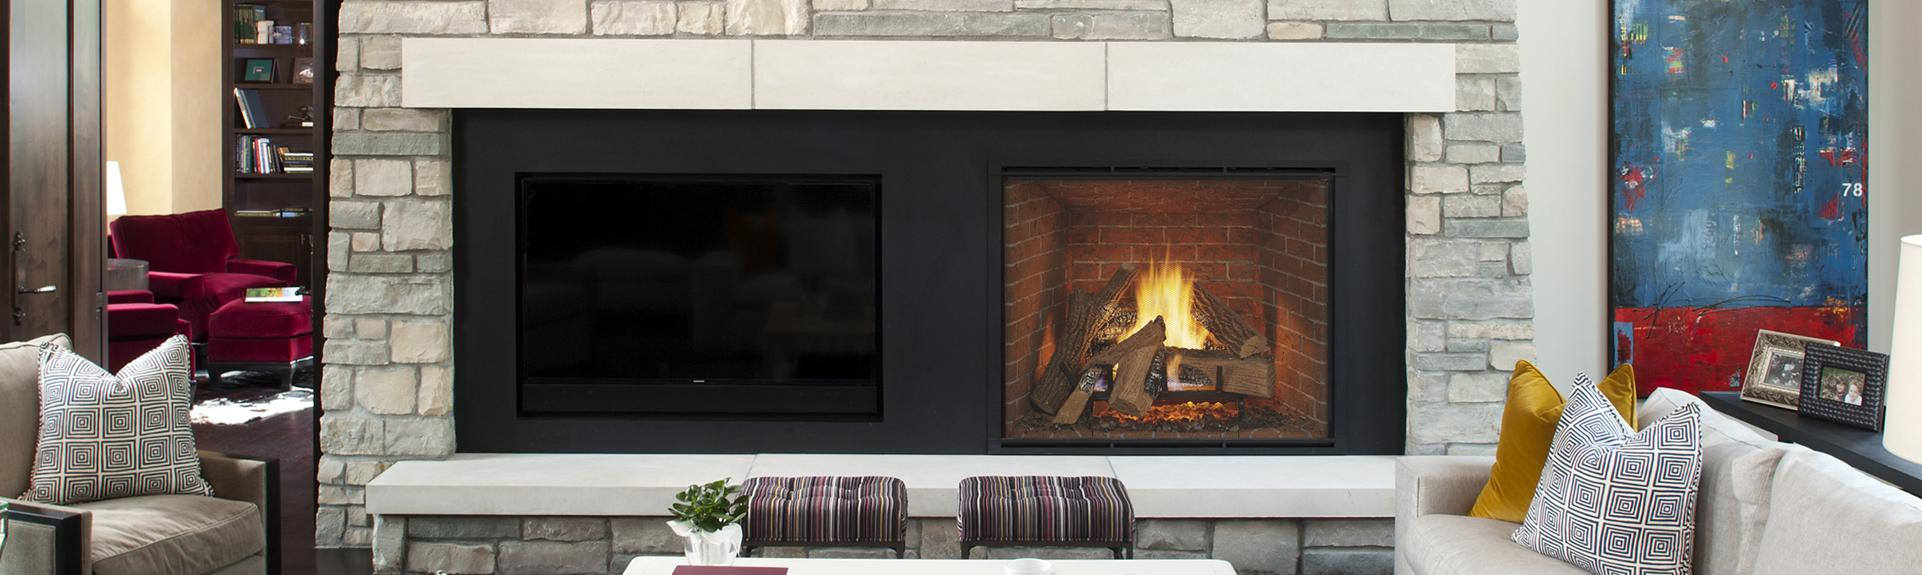 Gas Fireplace Faq Fireplace Faqs Wood Stove Fireplace Center